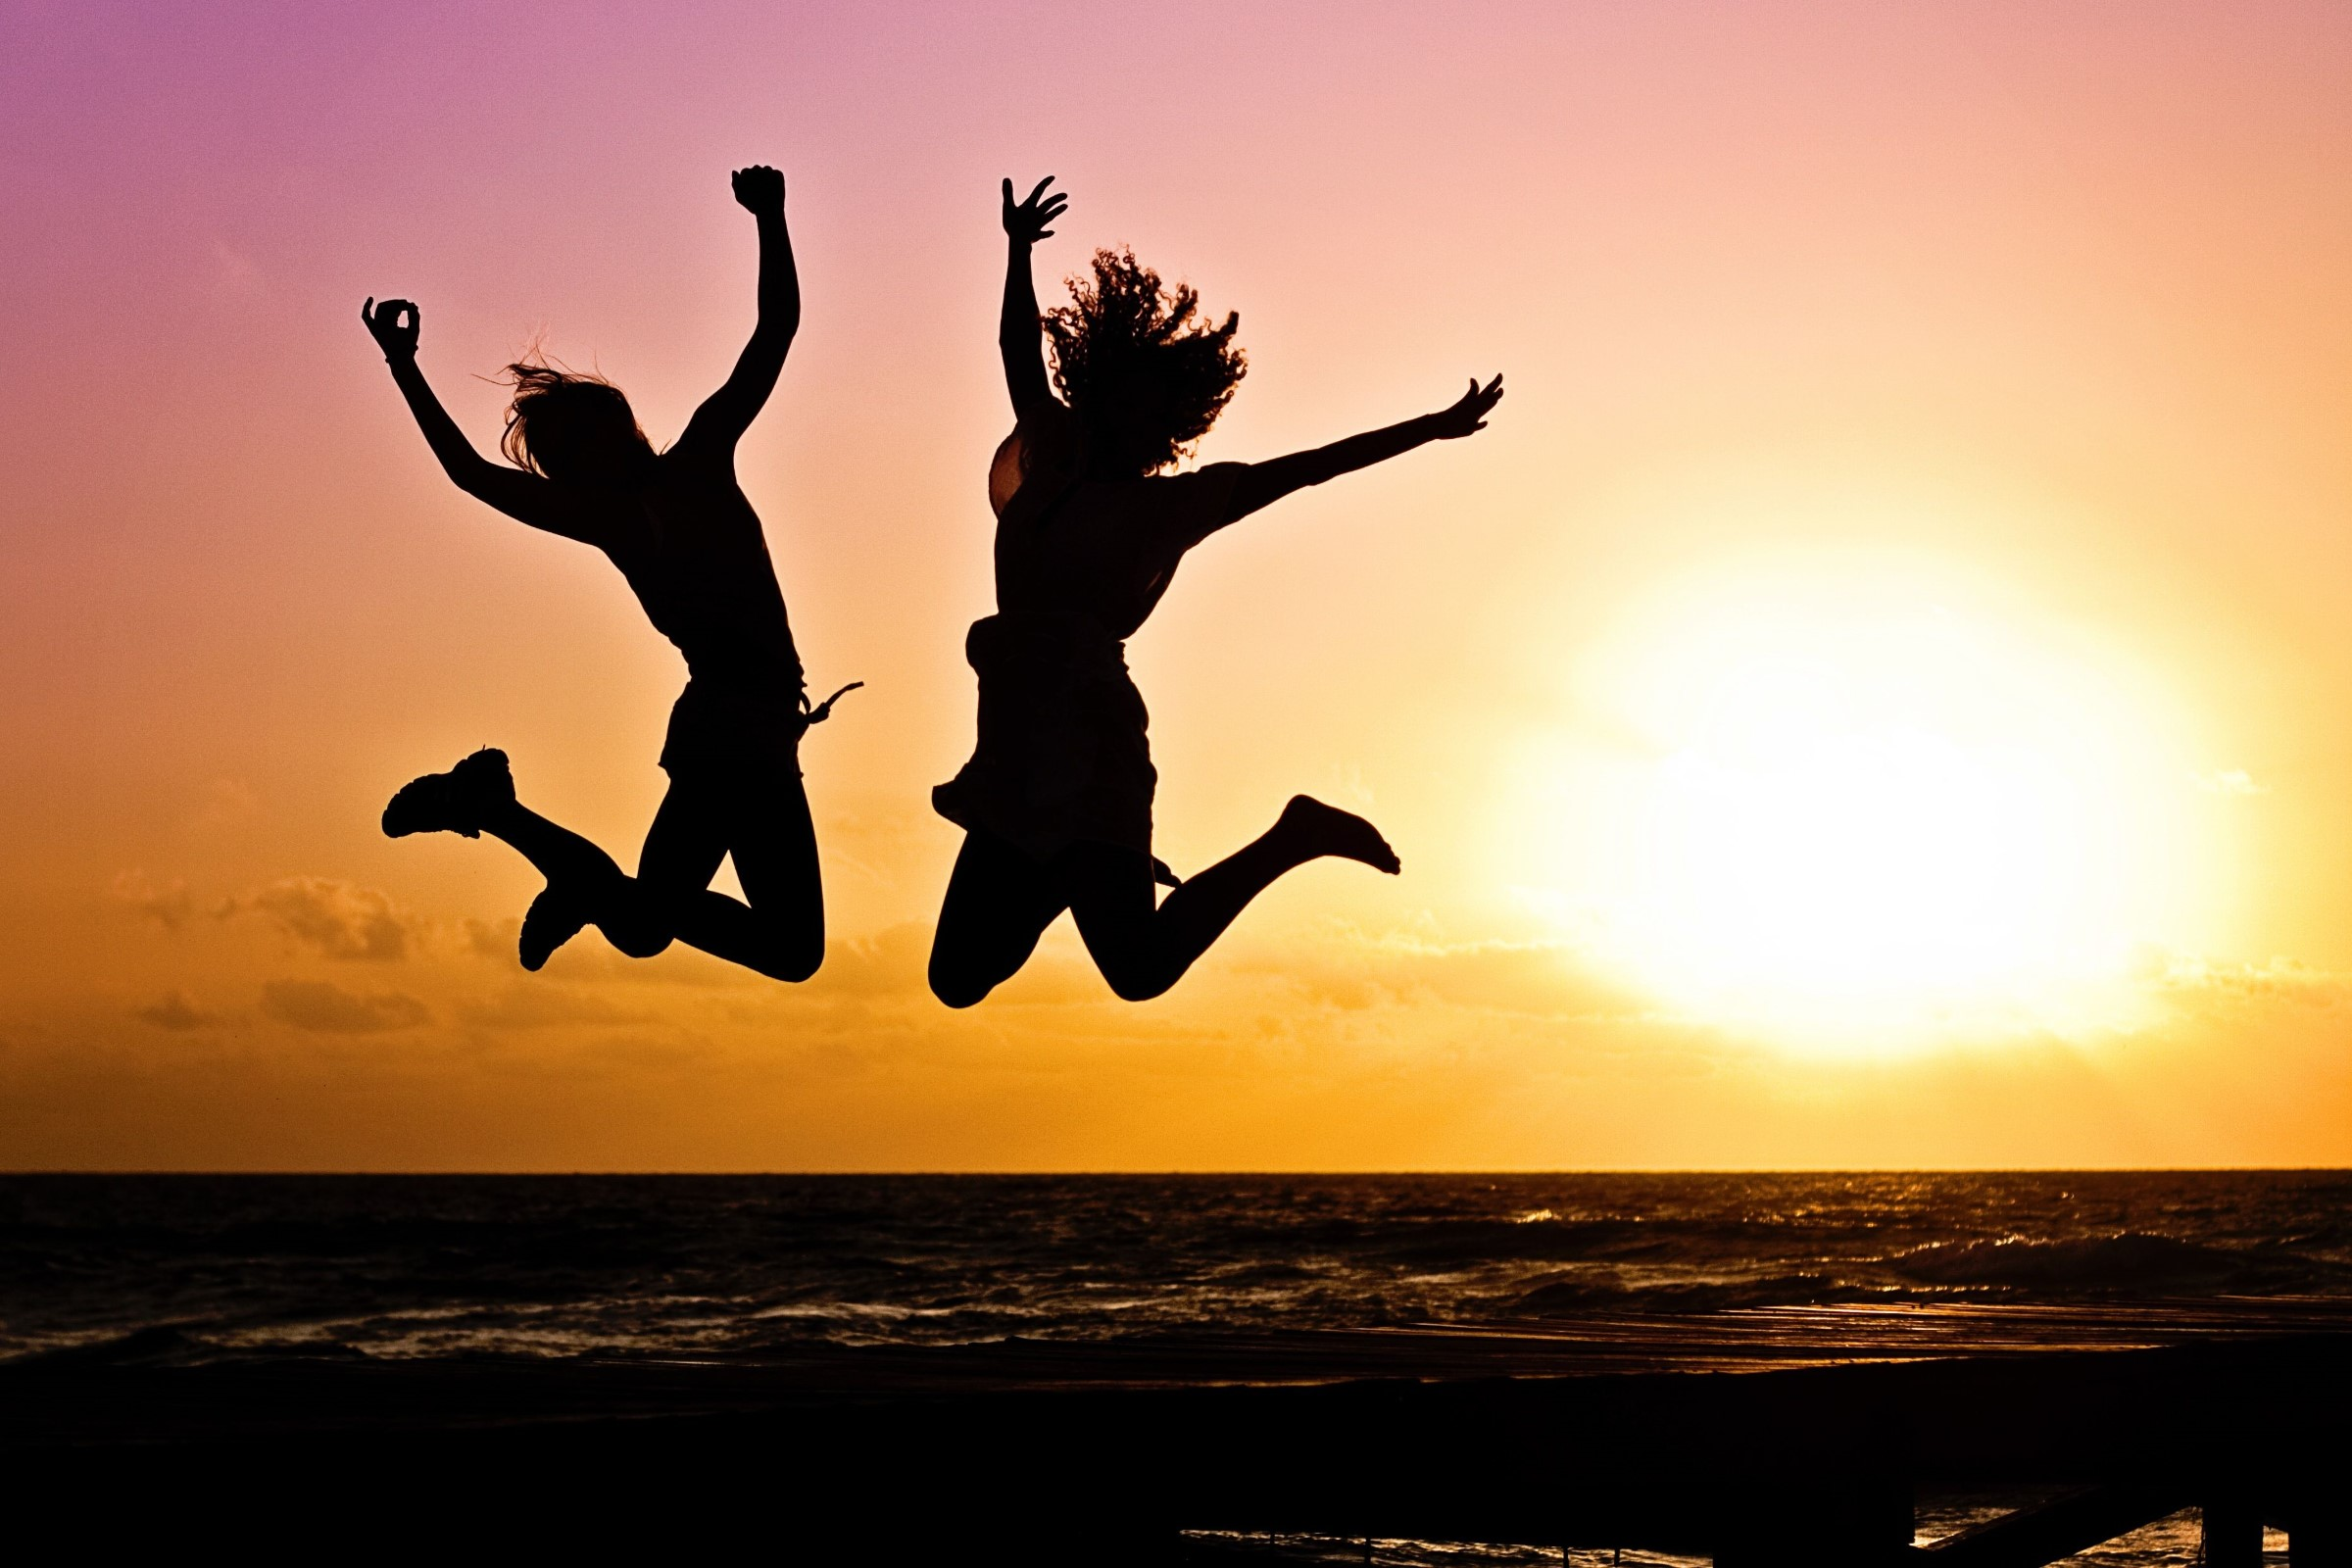 Silhouettes jumping on a beach